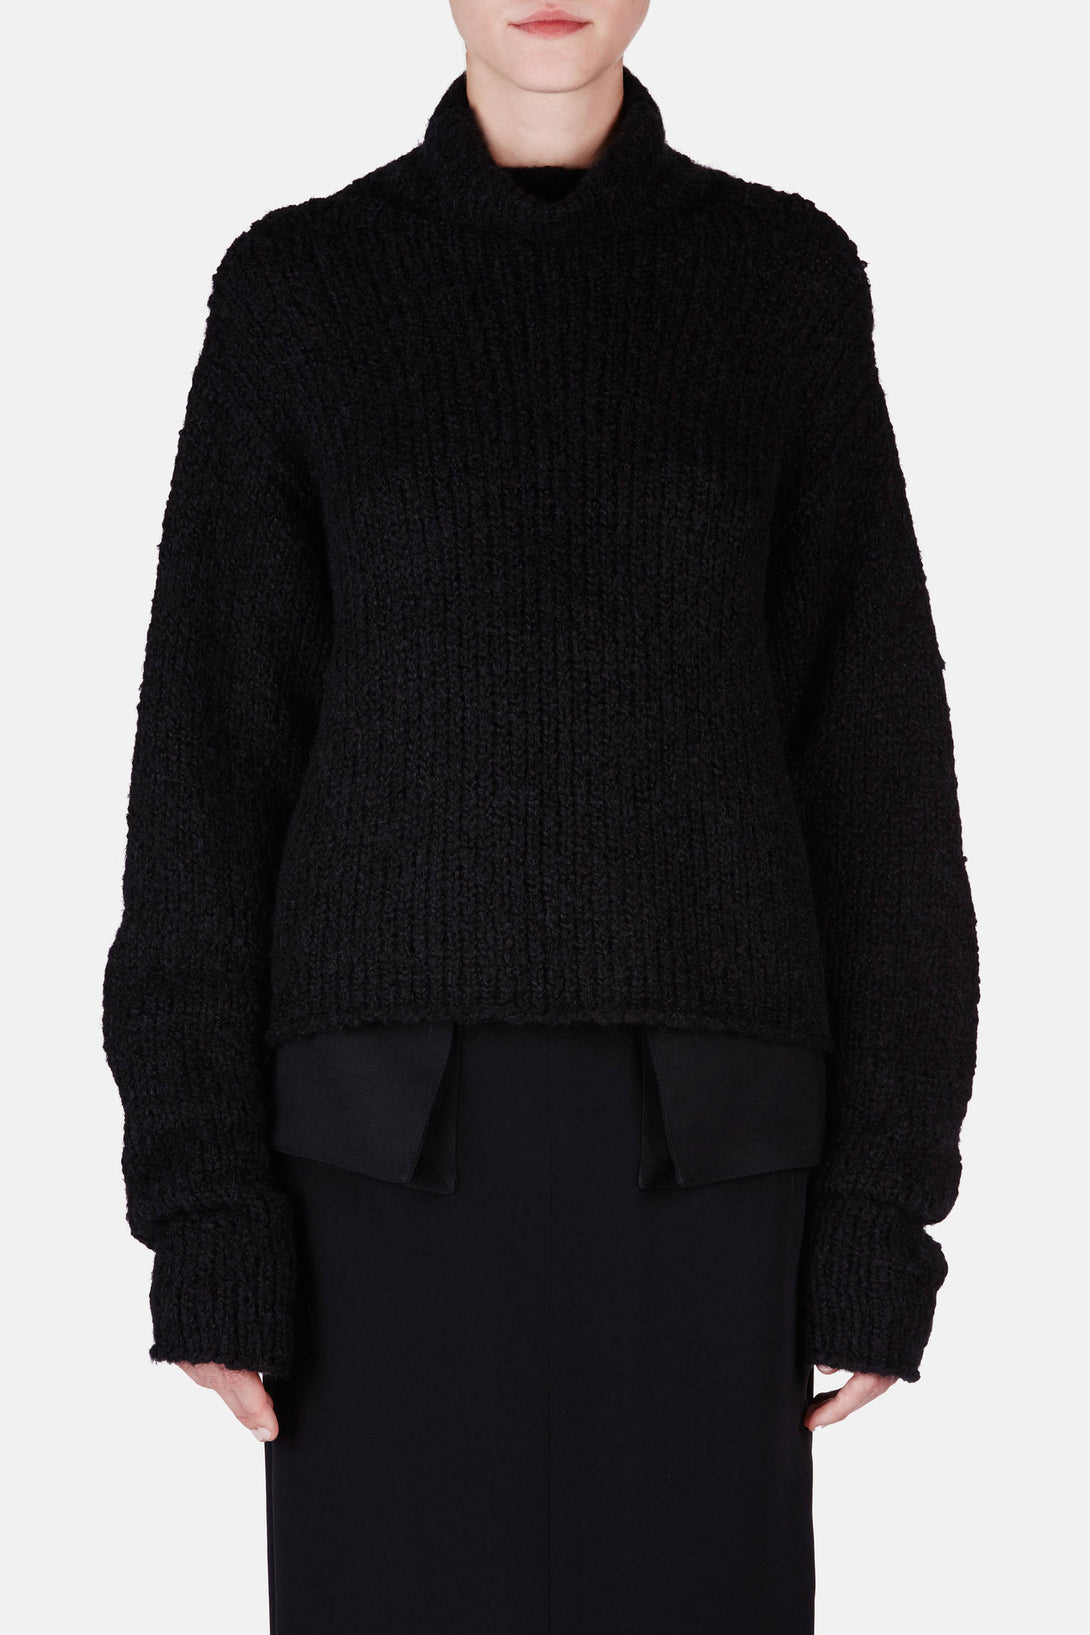 Sweater 10 Exposed Back Turtleneck Sweater - Black